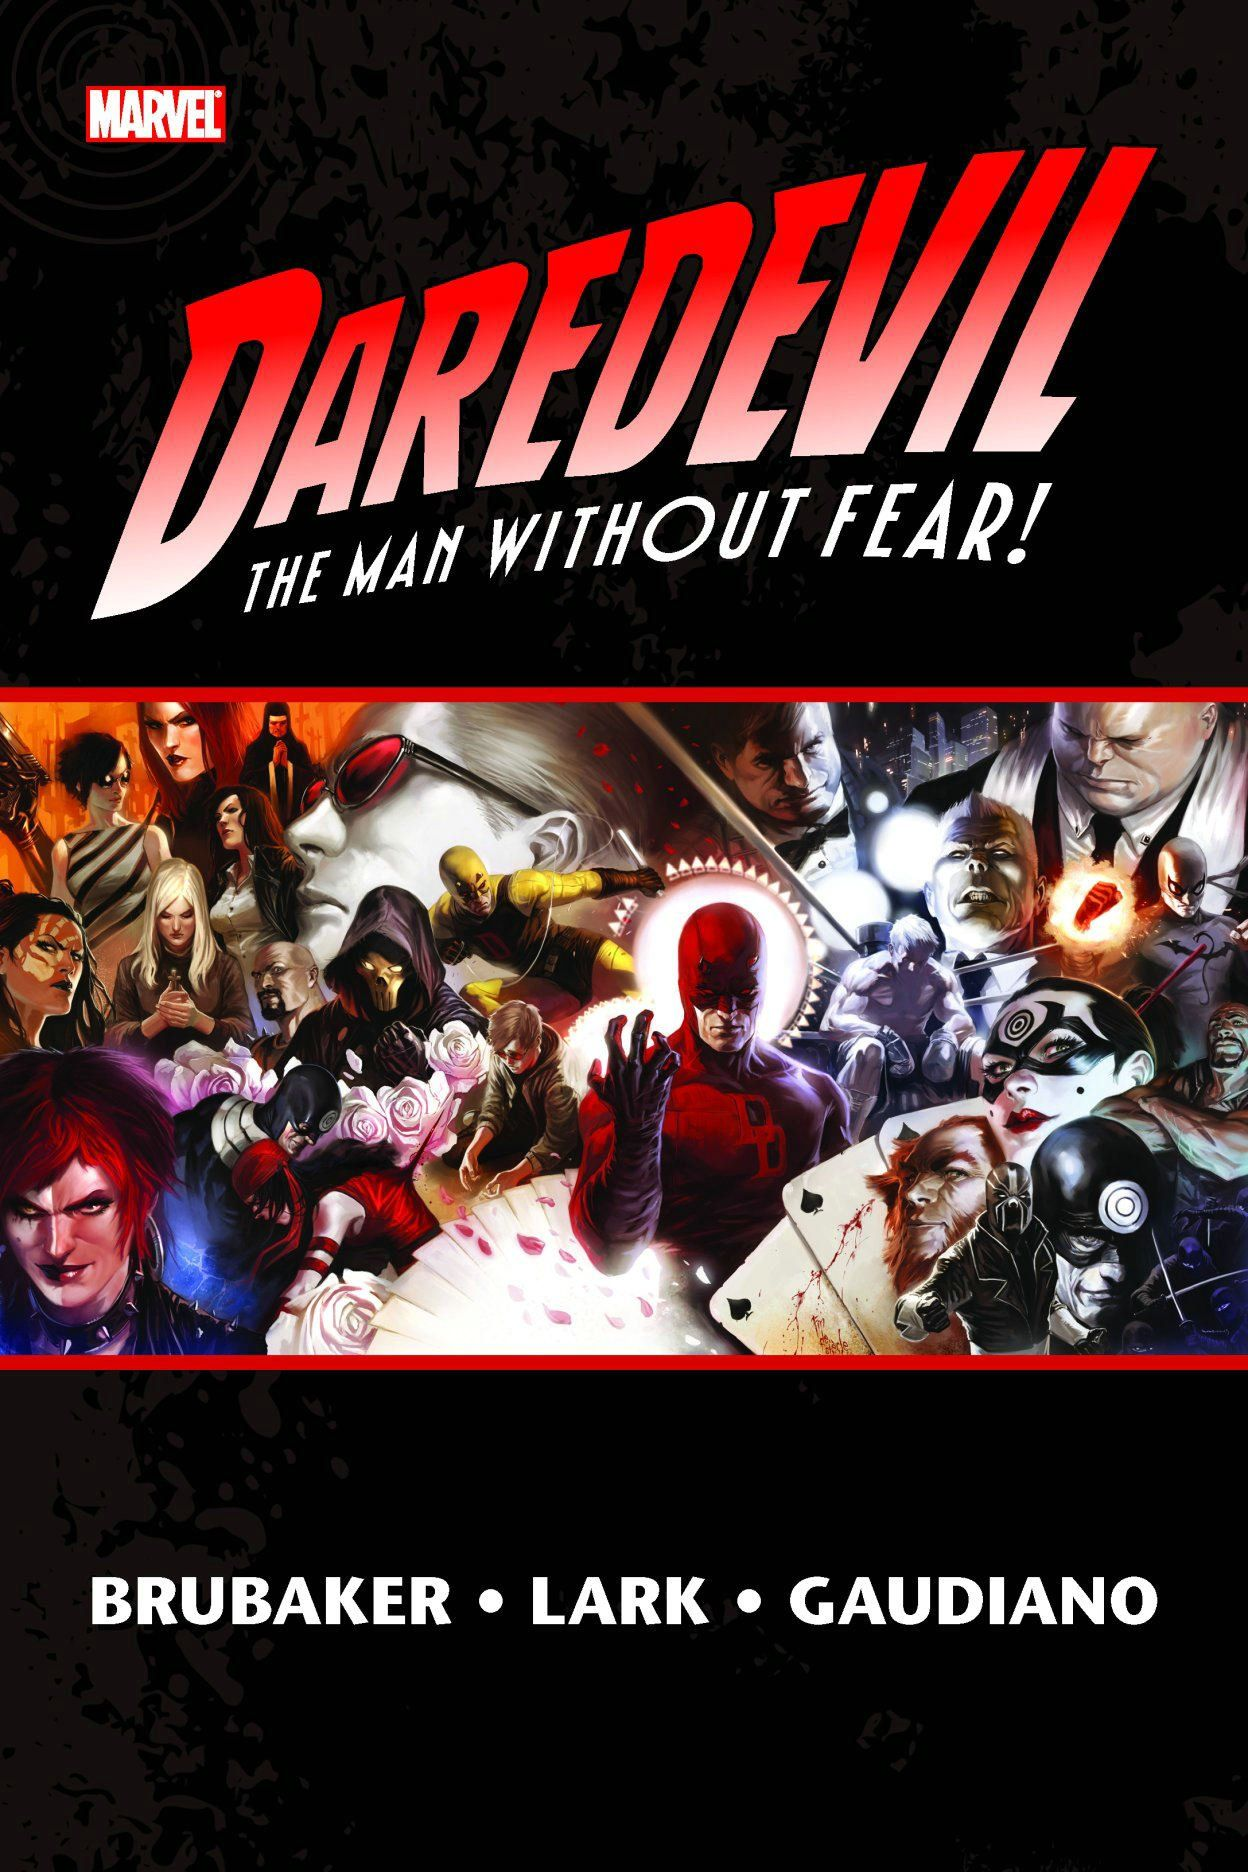 Daredevil The Man Without Fear Volume Two by Ed Brubaker